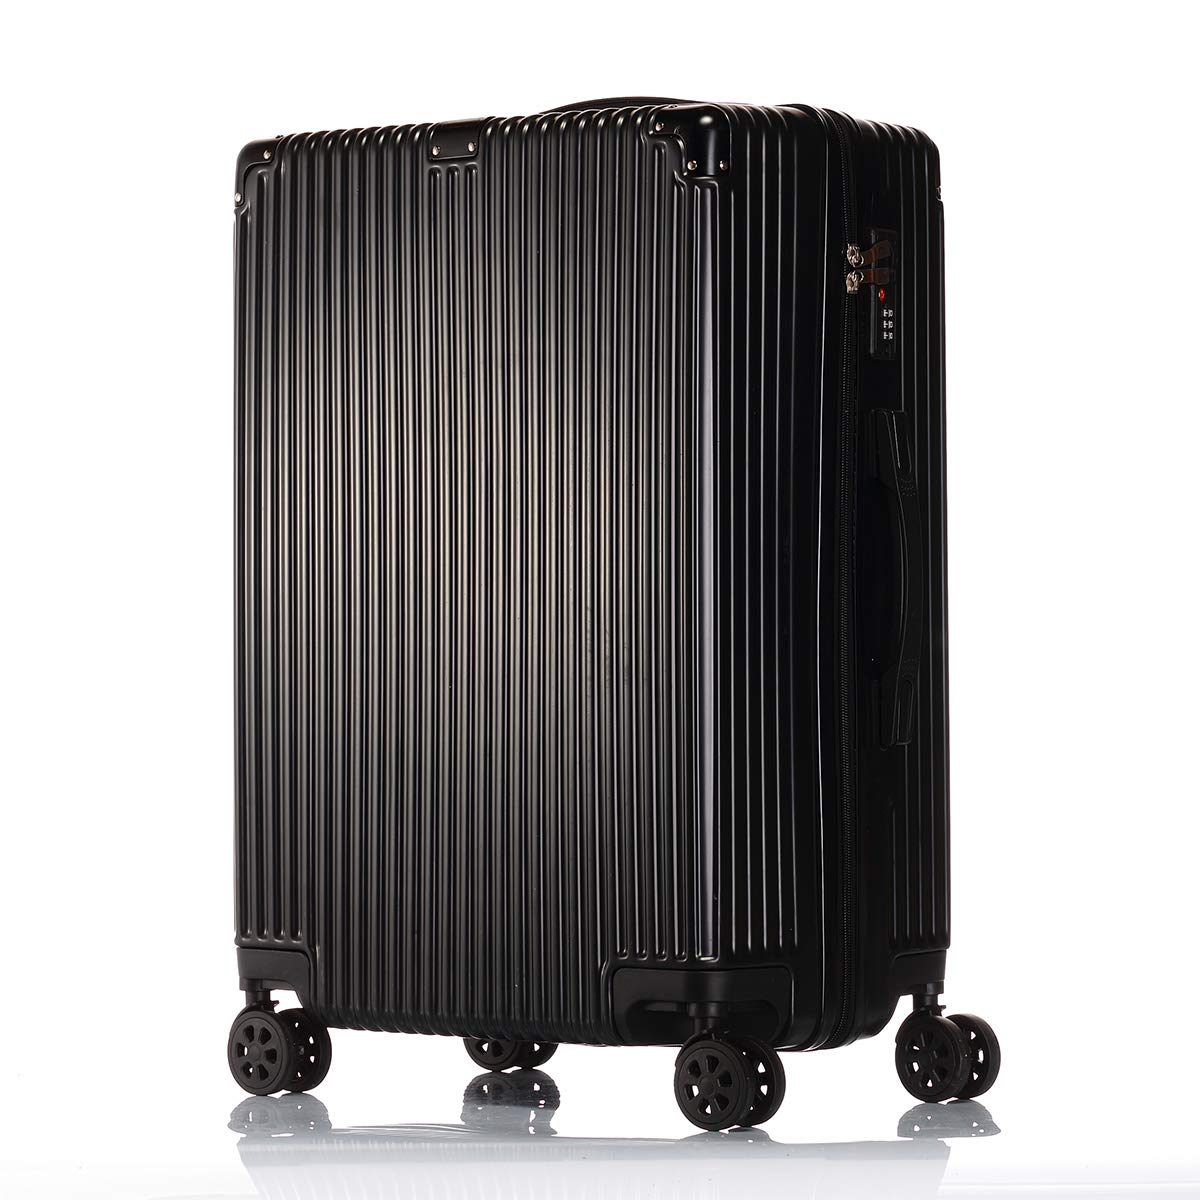 MRXUE 28 Travel Suitcase with Spinner Wheels,Hard /& Flexible Case Carry On Luggage Adjustable Handle